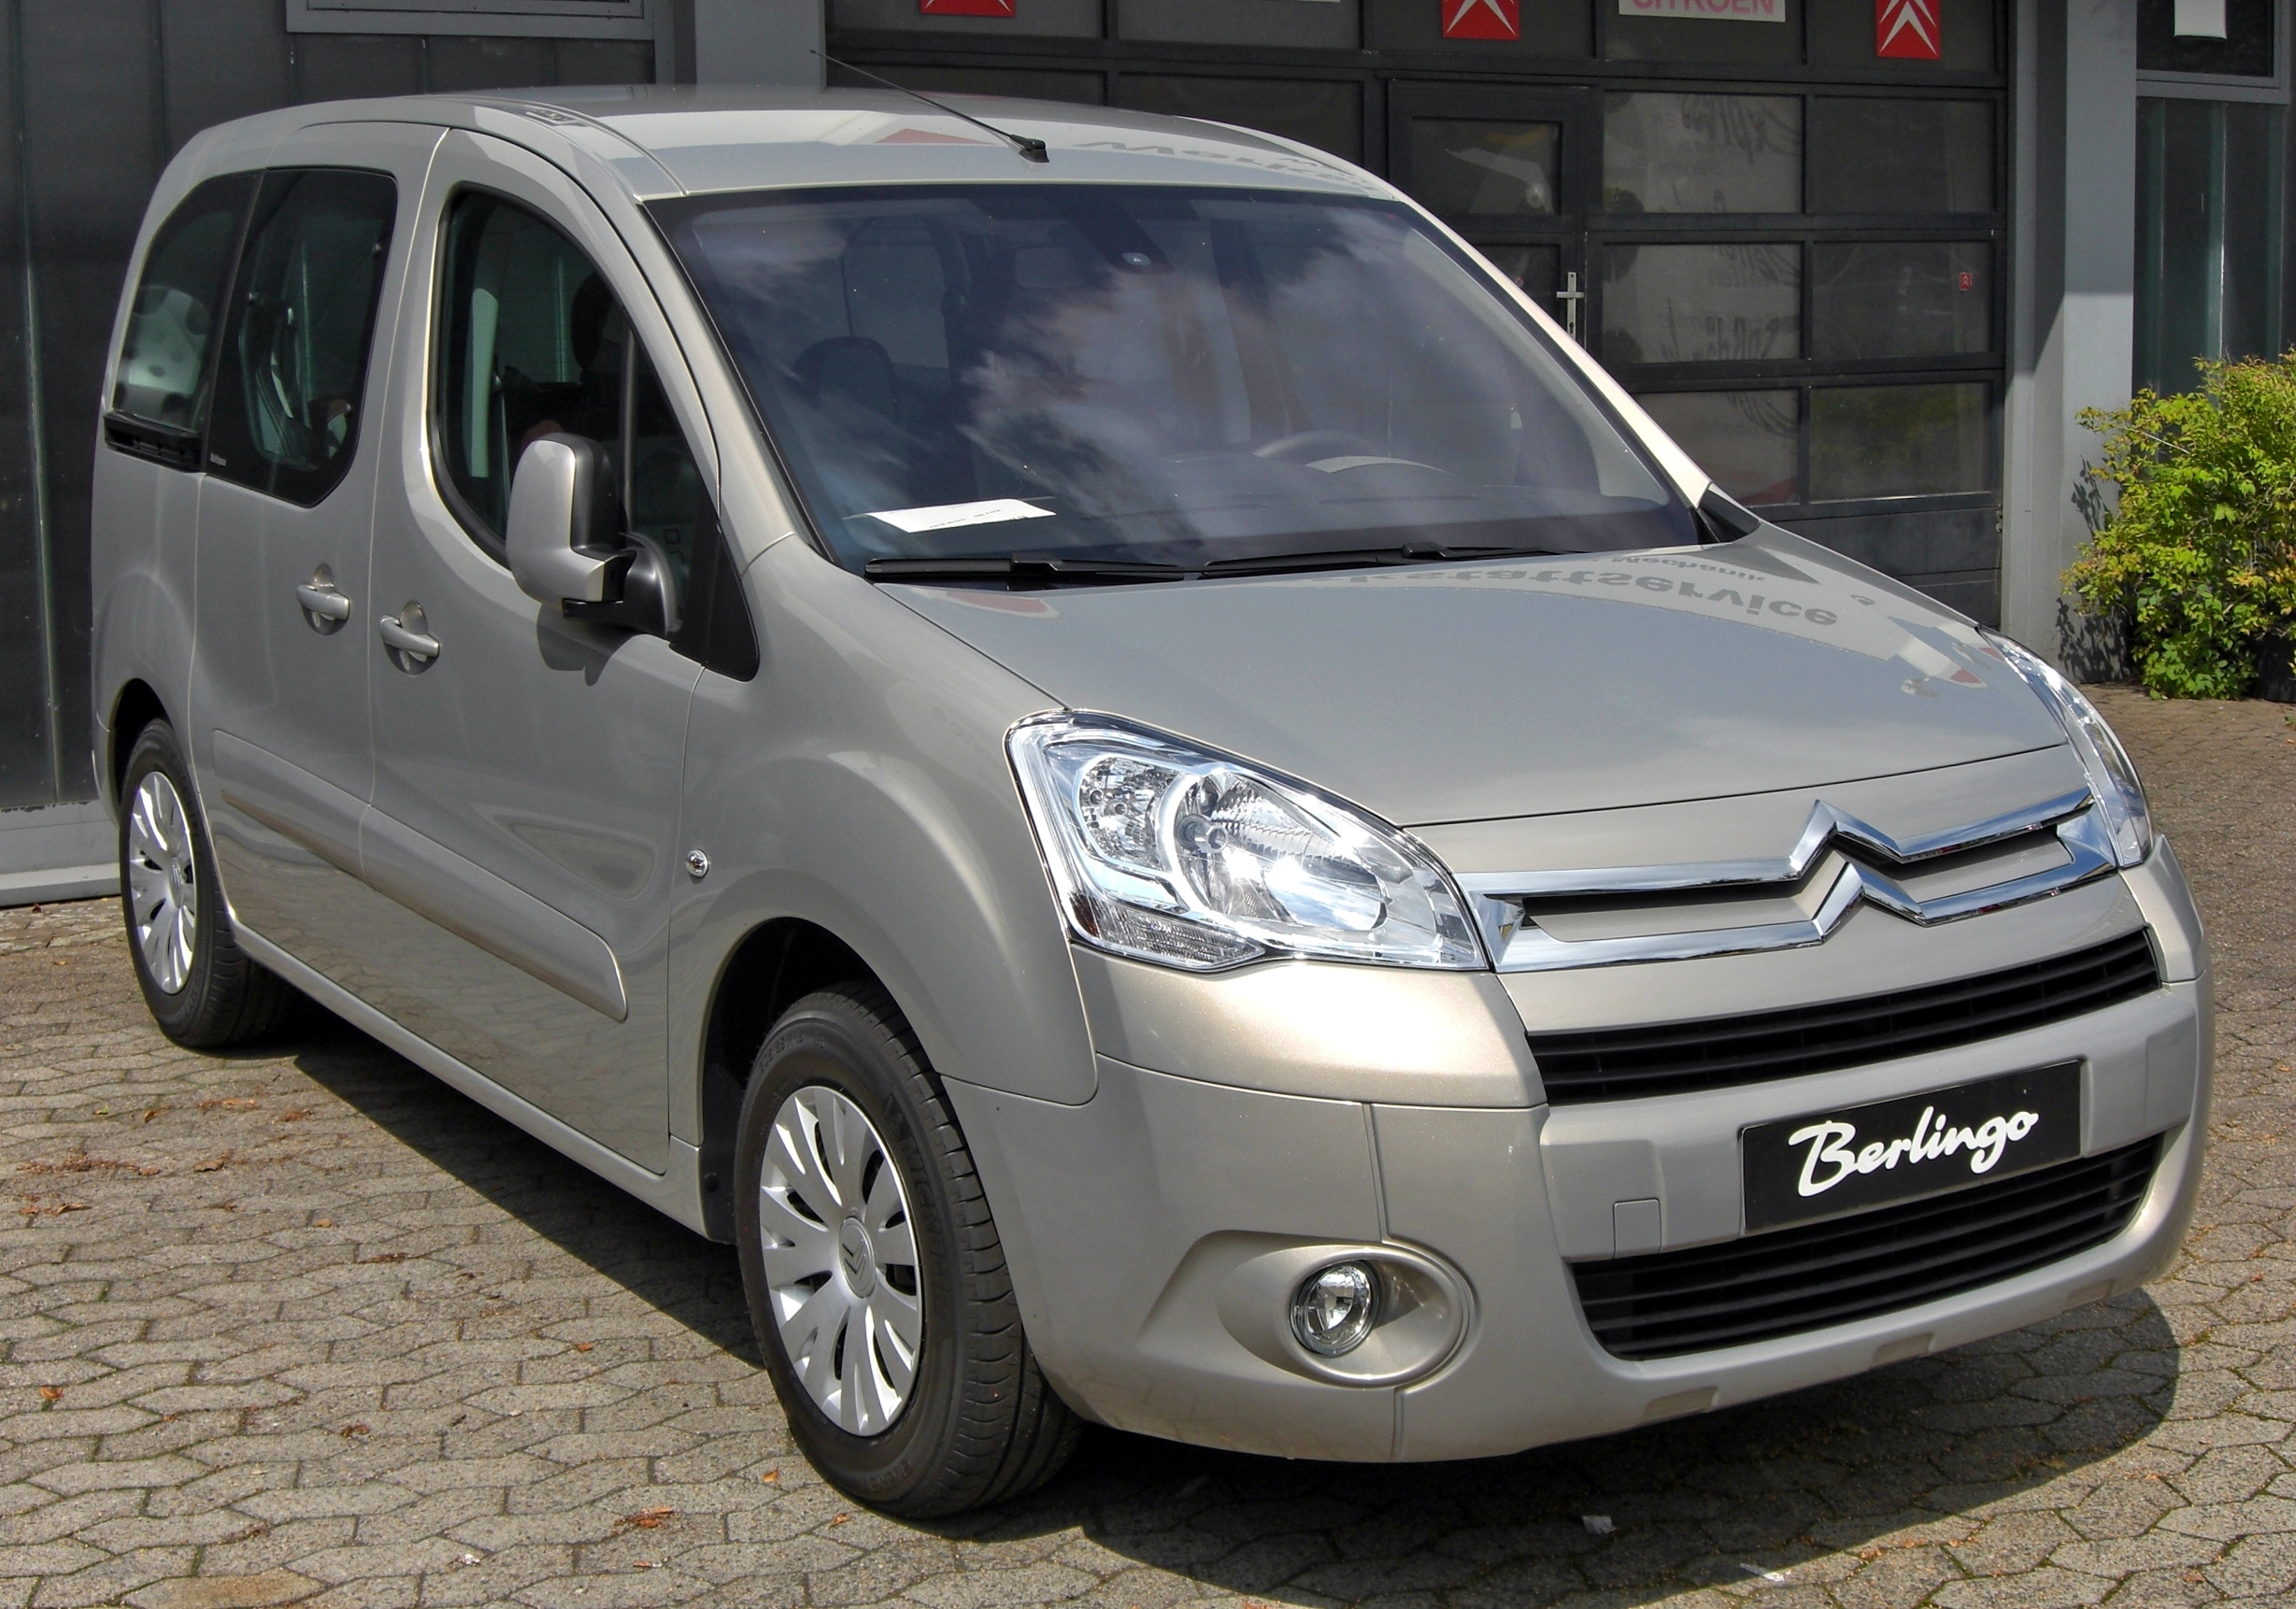 File:Citroën Berlingo II front.JPG